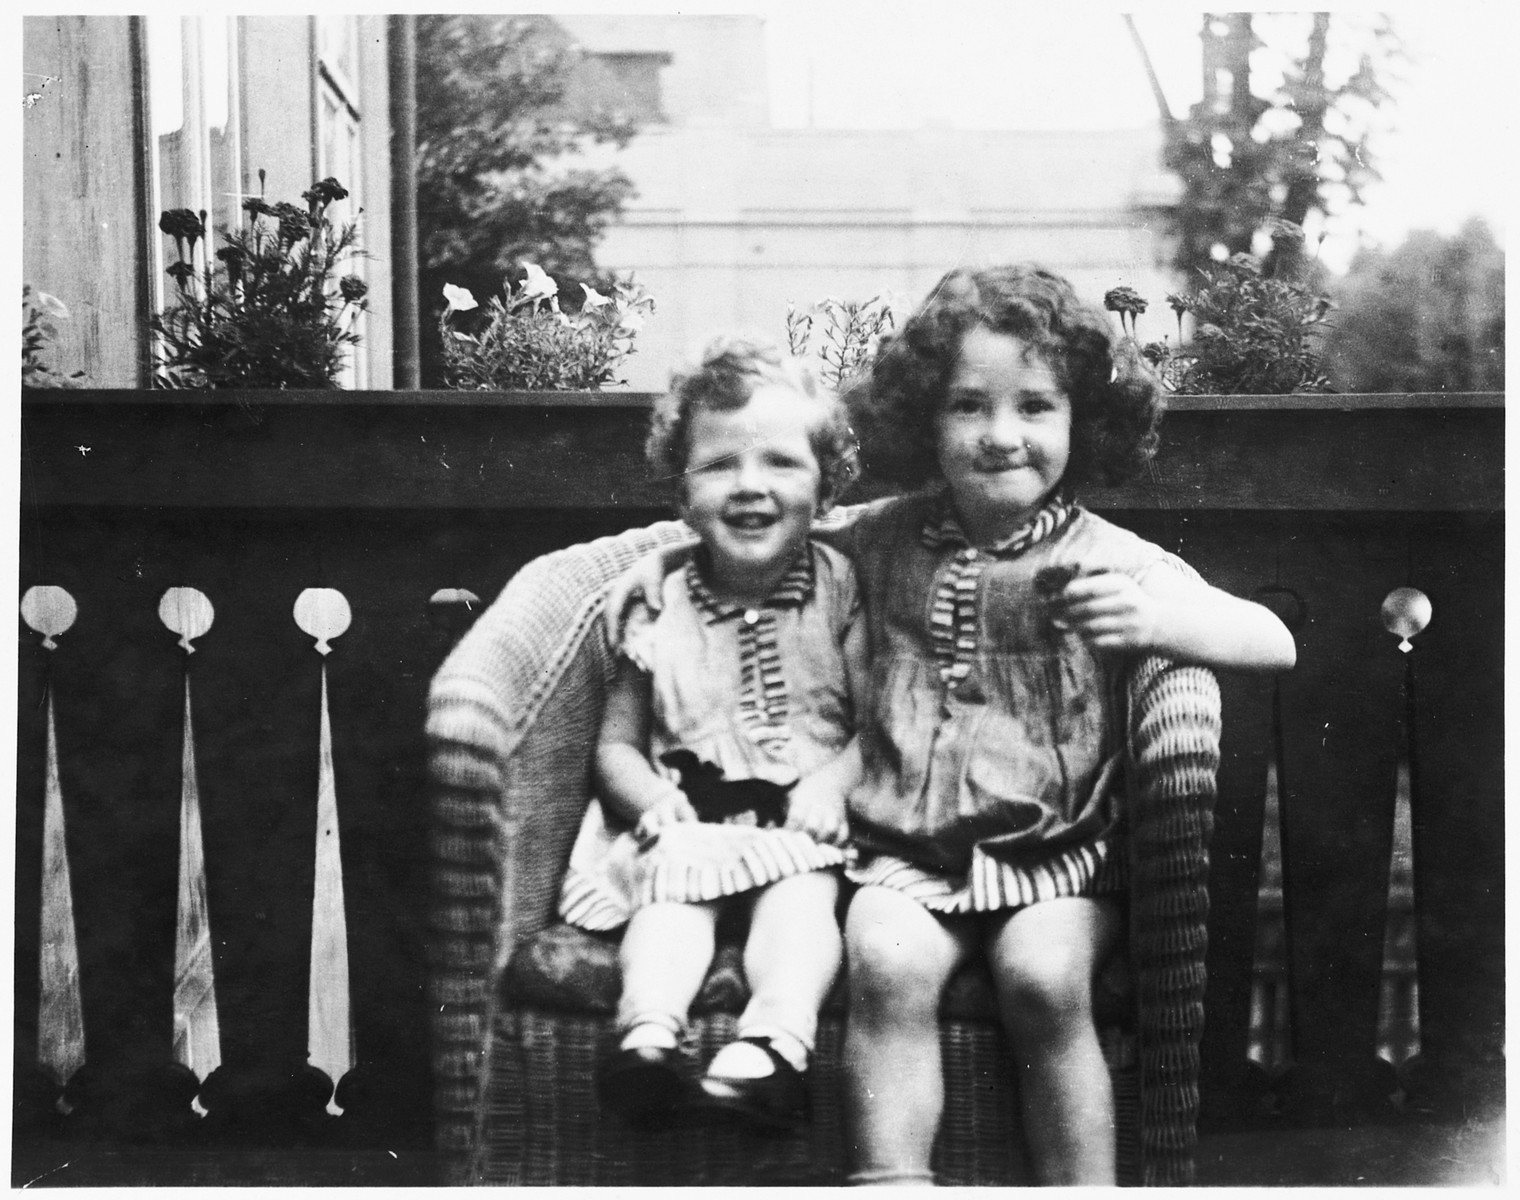 Shulamit and Gitta Posner share a wicker chair on the porch of their home in Kiel, Germany.